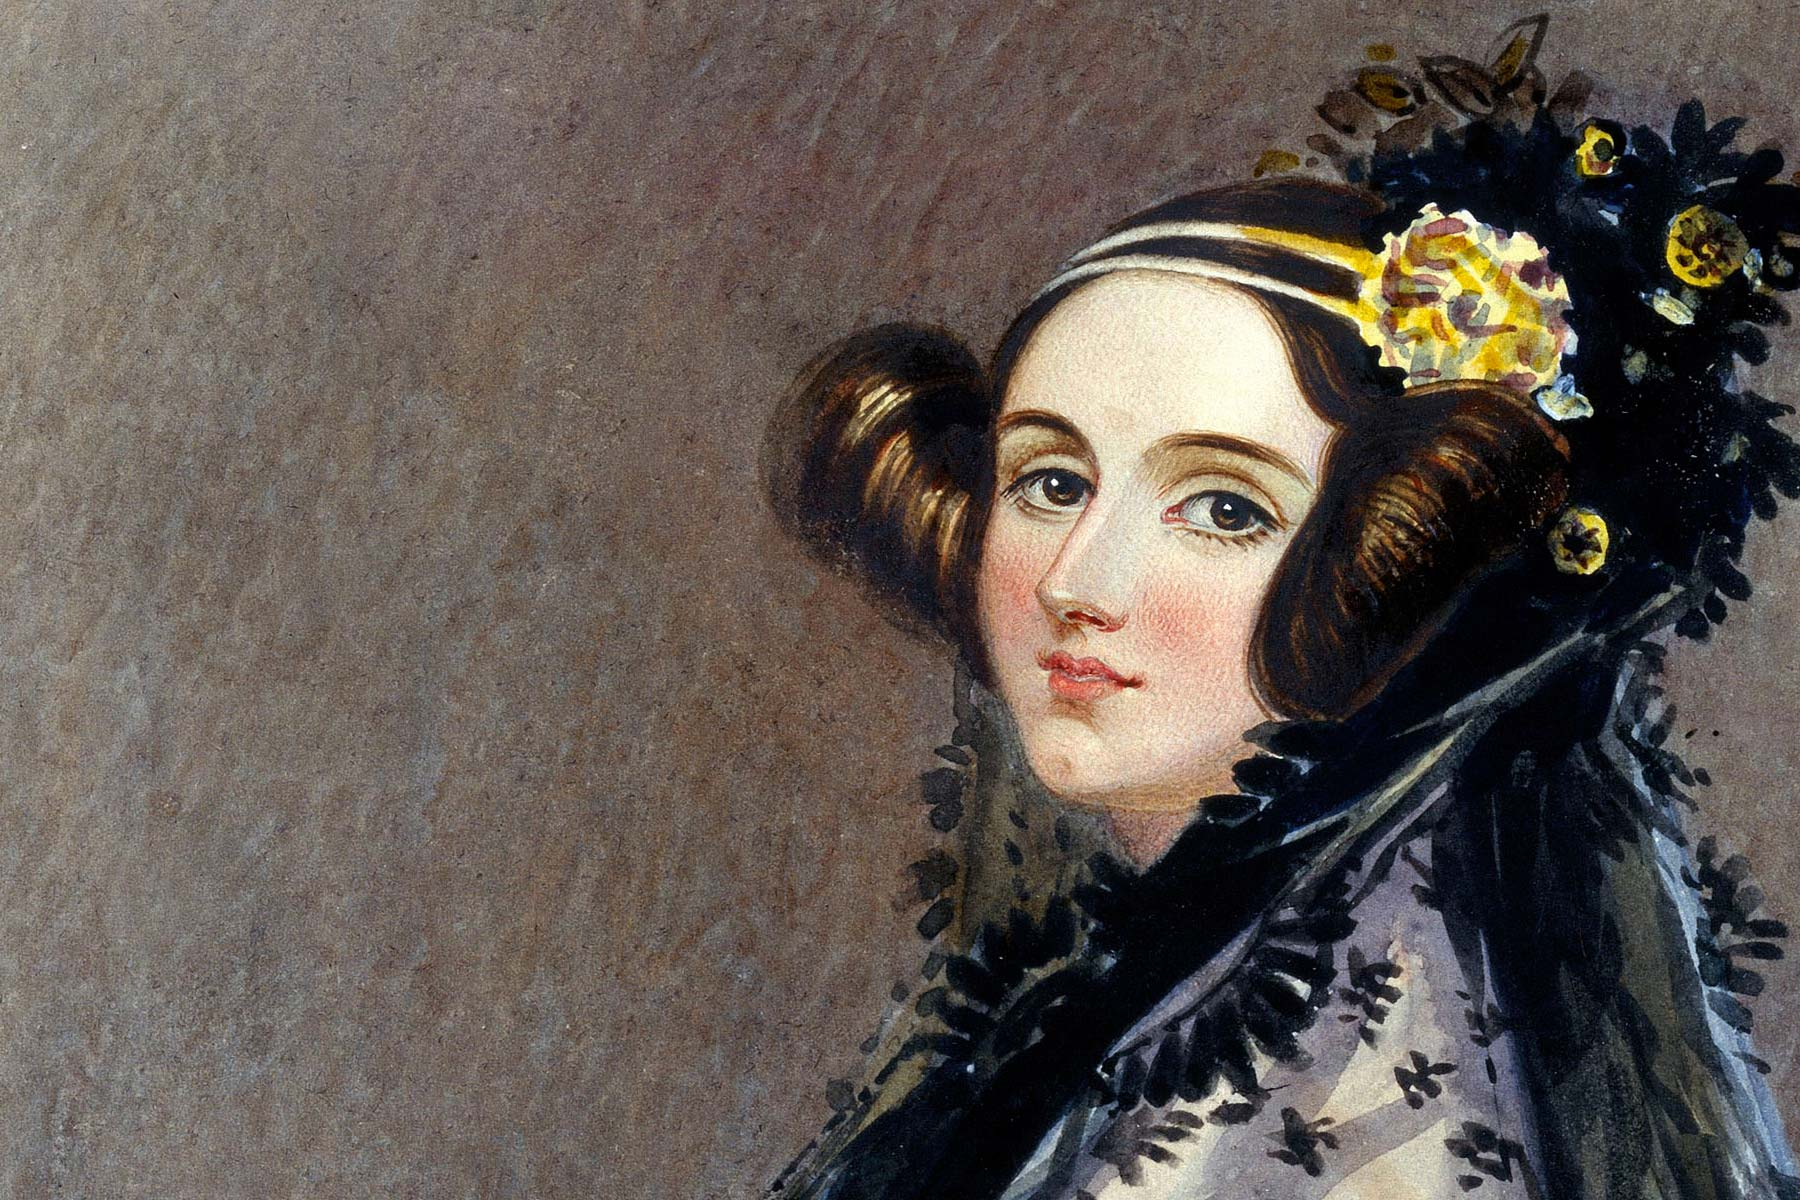 Ada Lovelace's legacy: inspired and inspiring